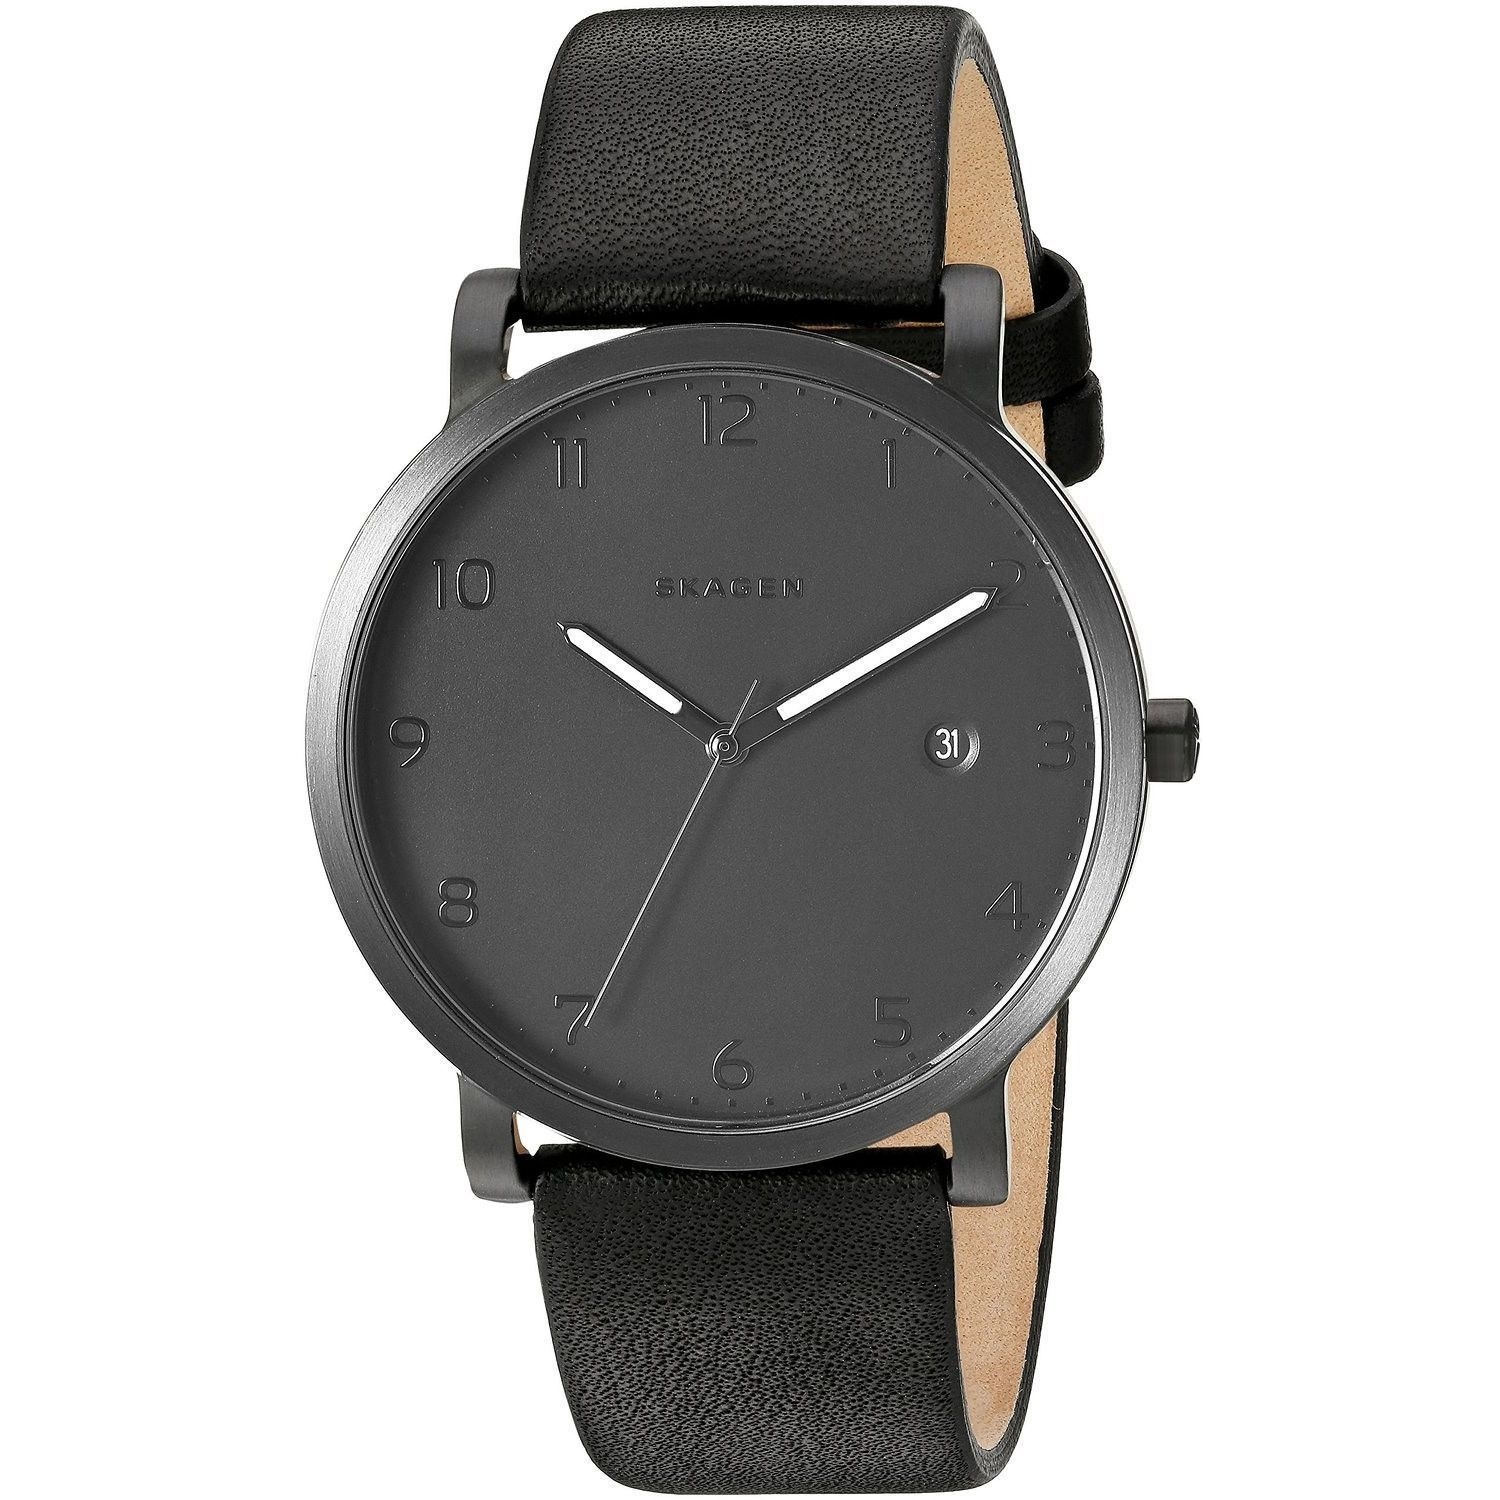 c tan hagen review s skagen watches leather chriselli mens strap image watch